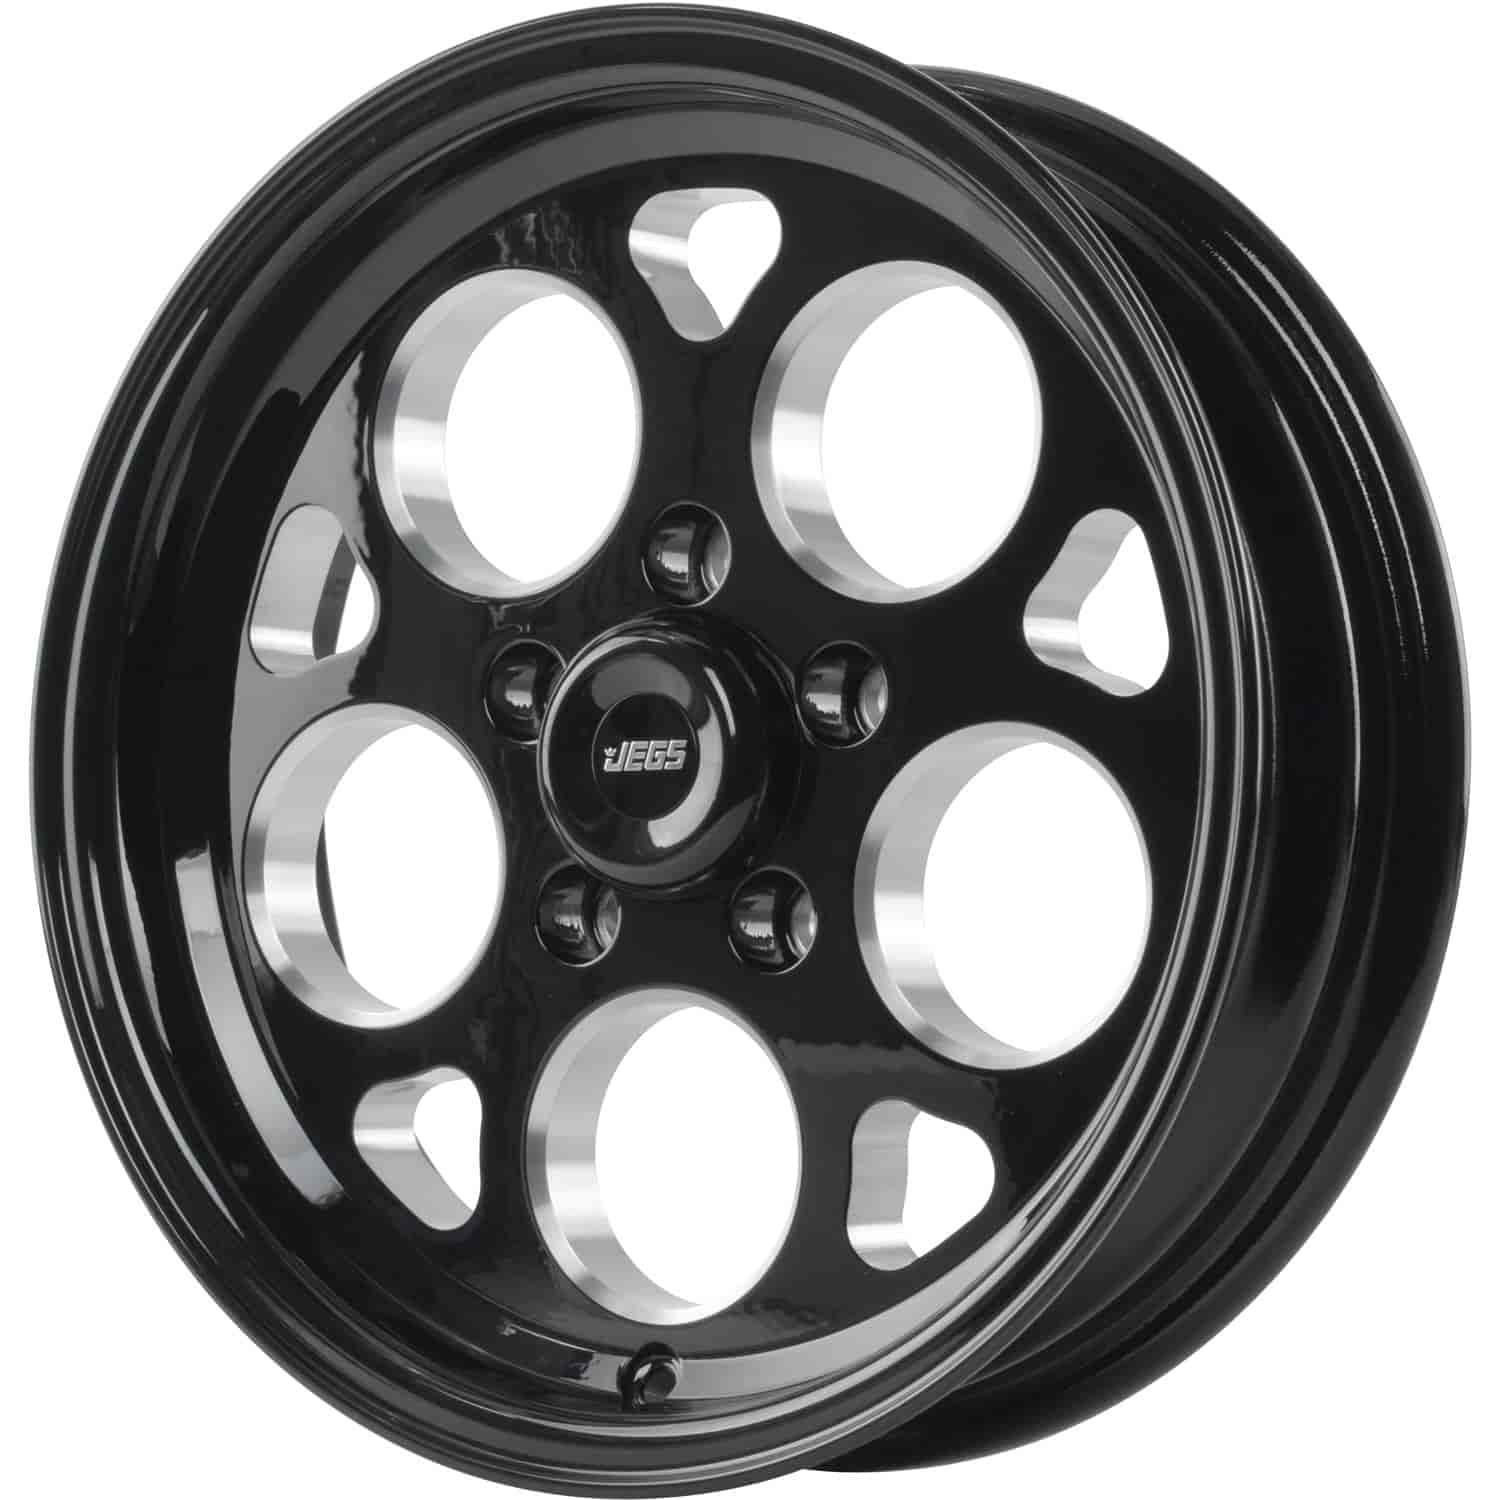 JEGS Performance Products 69103: SSR Mag Wheel Diameter & Width: 15 x ...